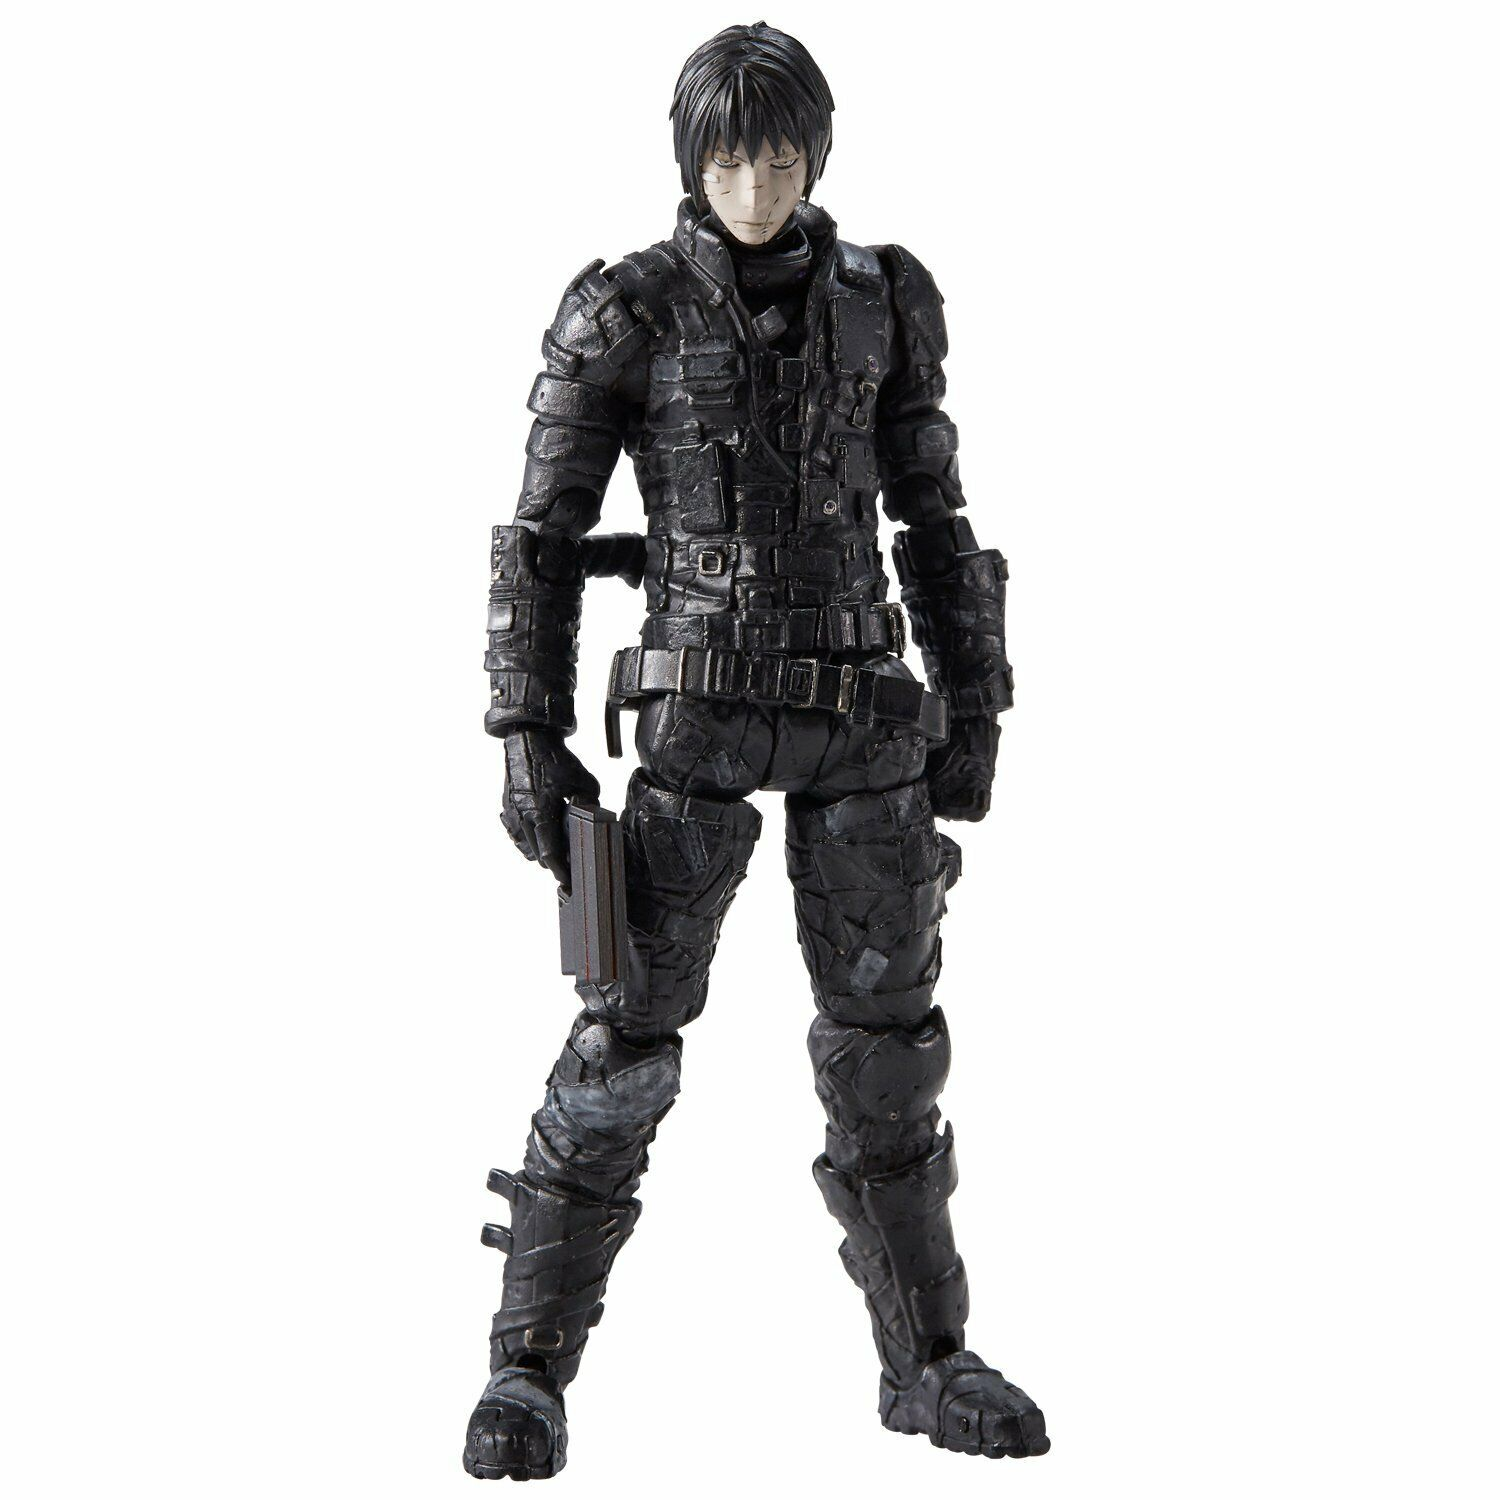 BLAME  Killy 1 12th Scale Articulated Figure by 1000toys